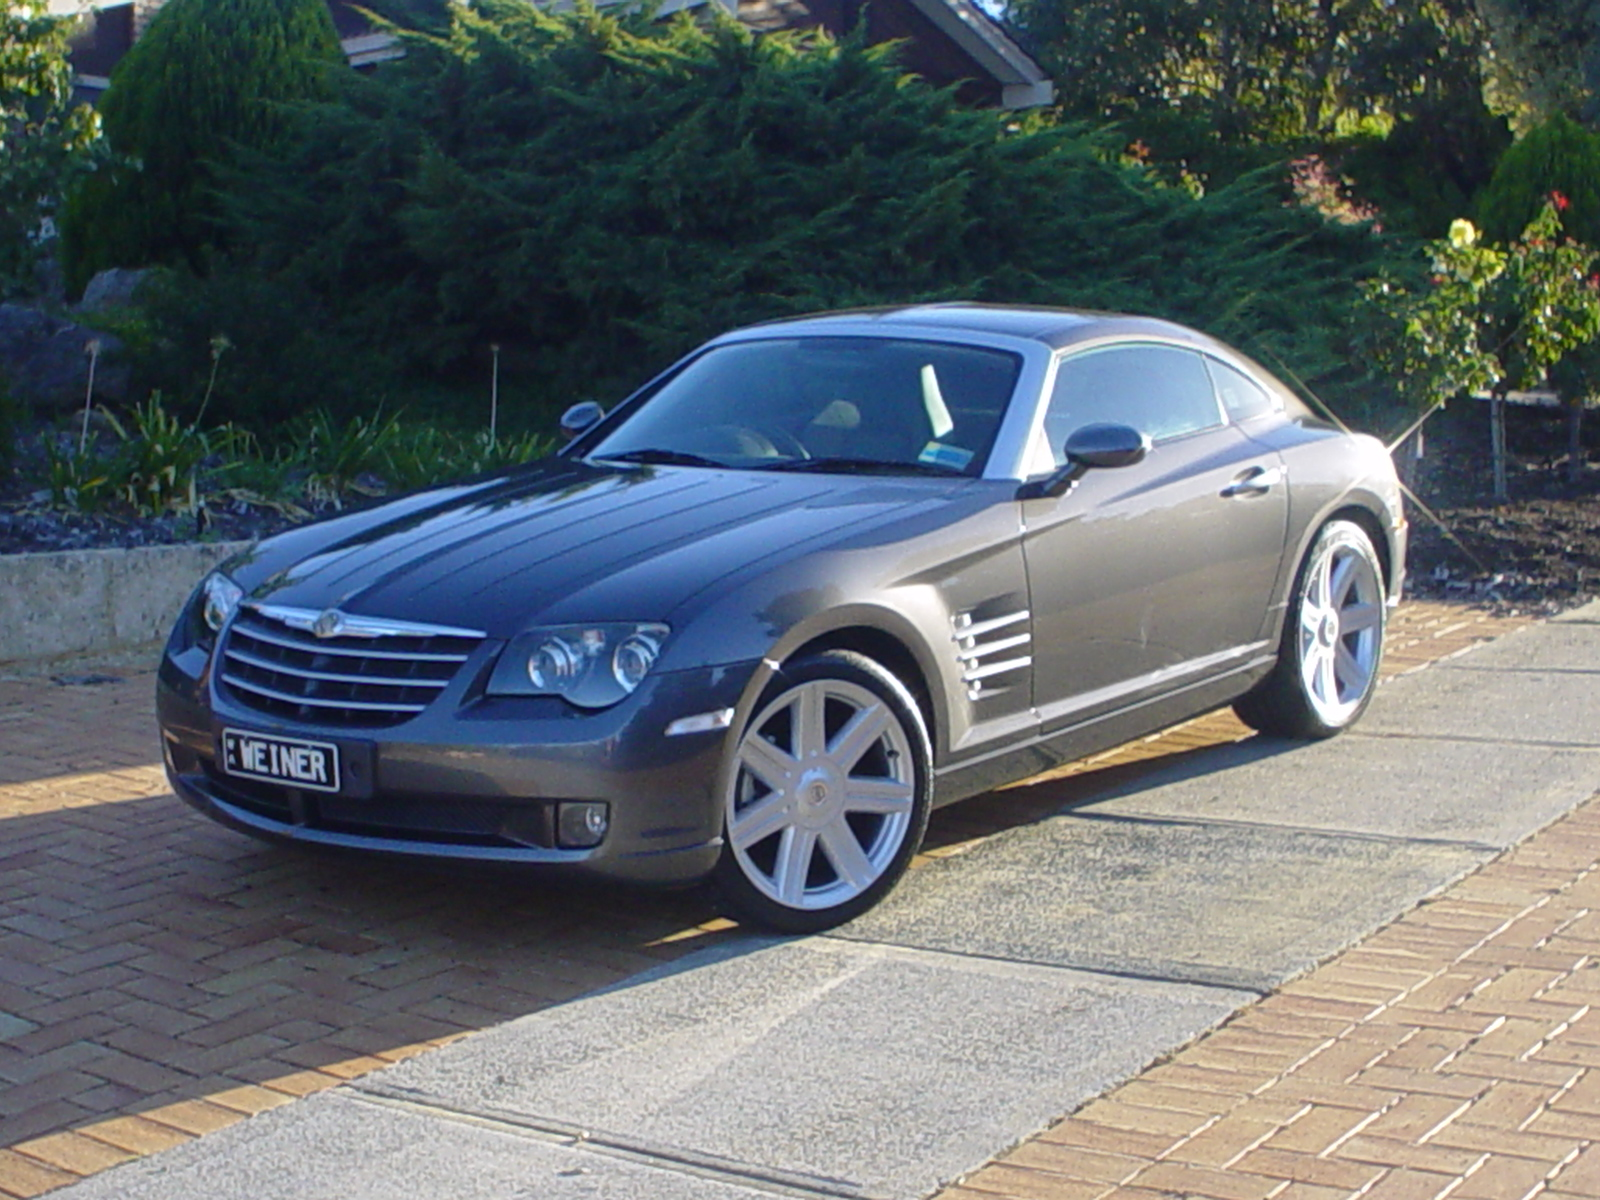 2006 Chrysler Crossfire #2